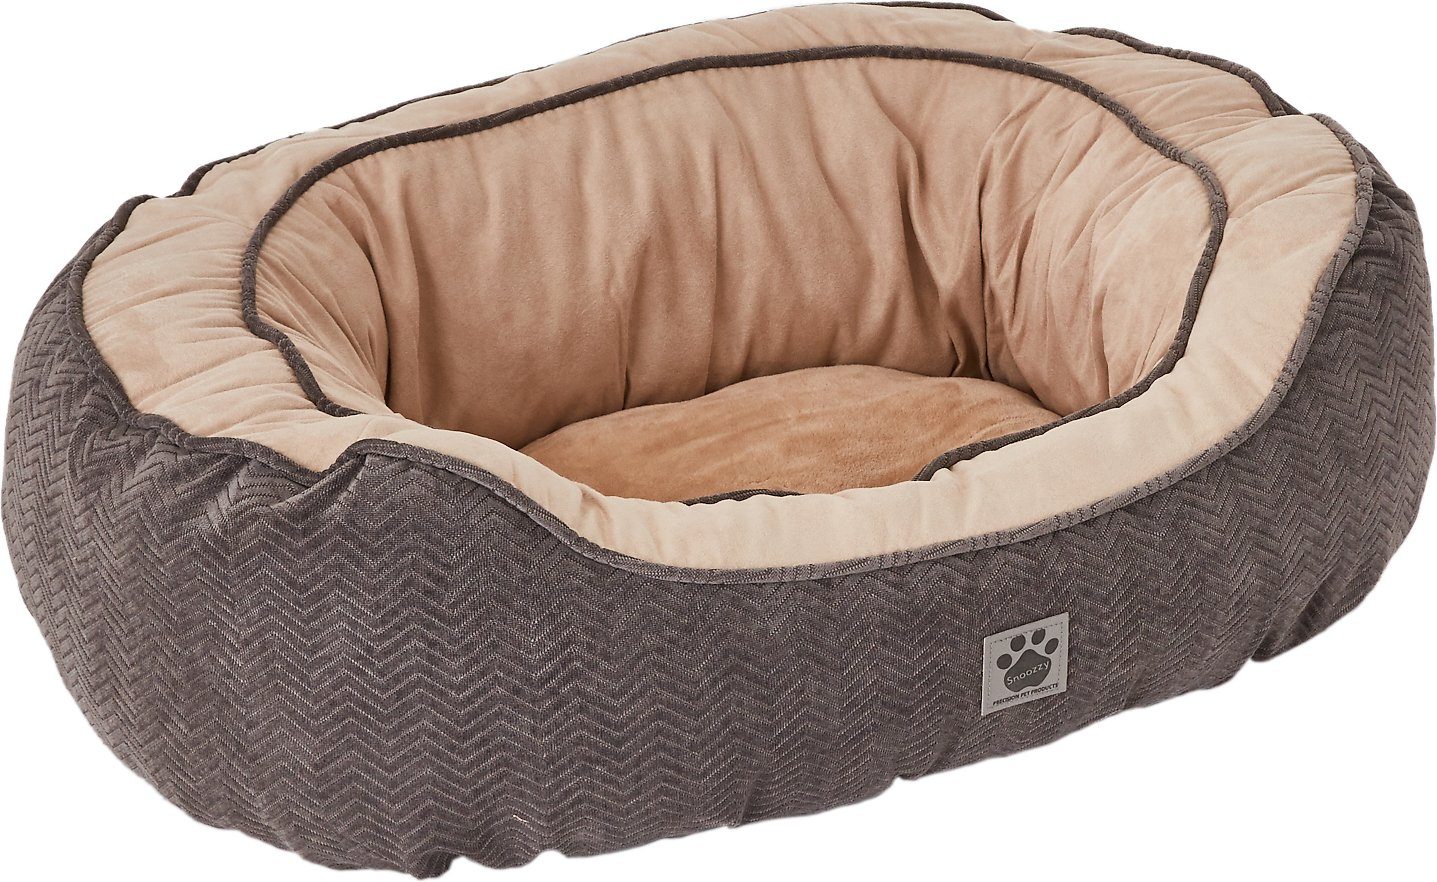 Precision Pet Chevron Chenille Gusset Daydreamer Pet Bed, Grey, Large